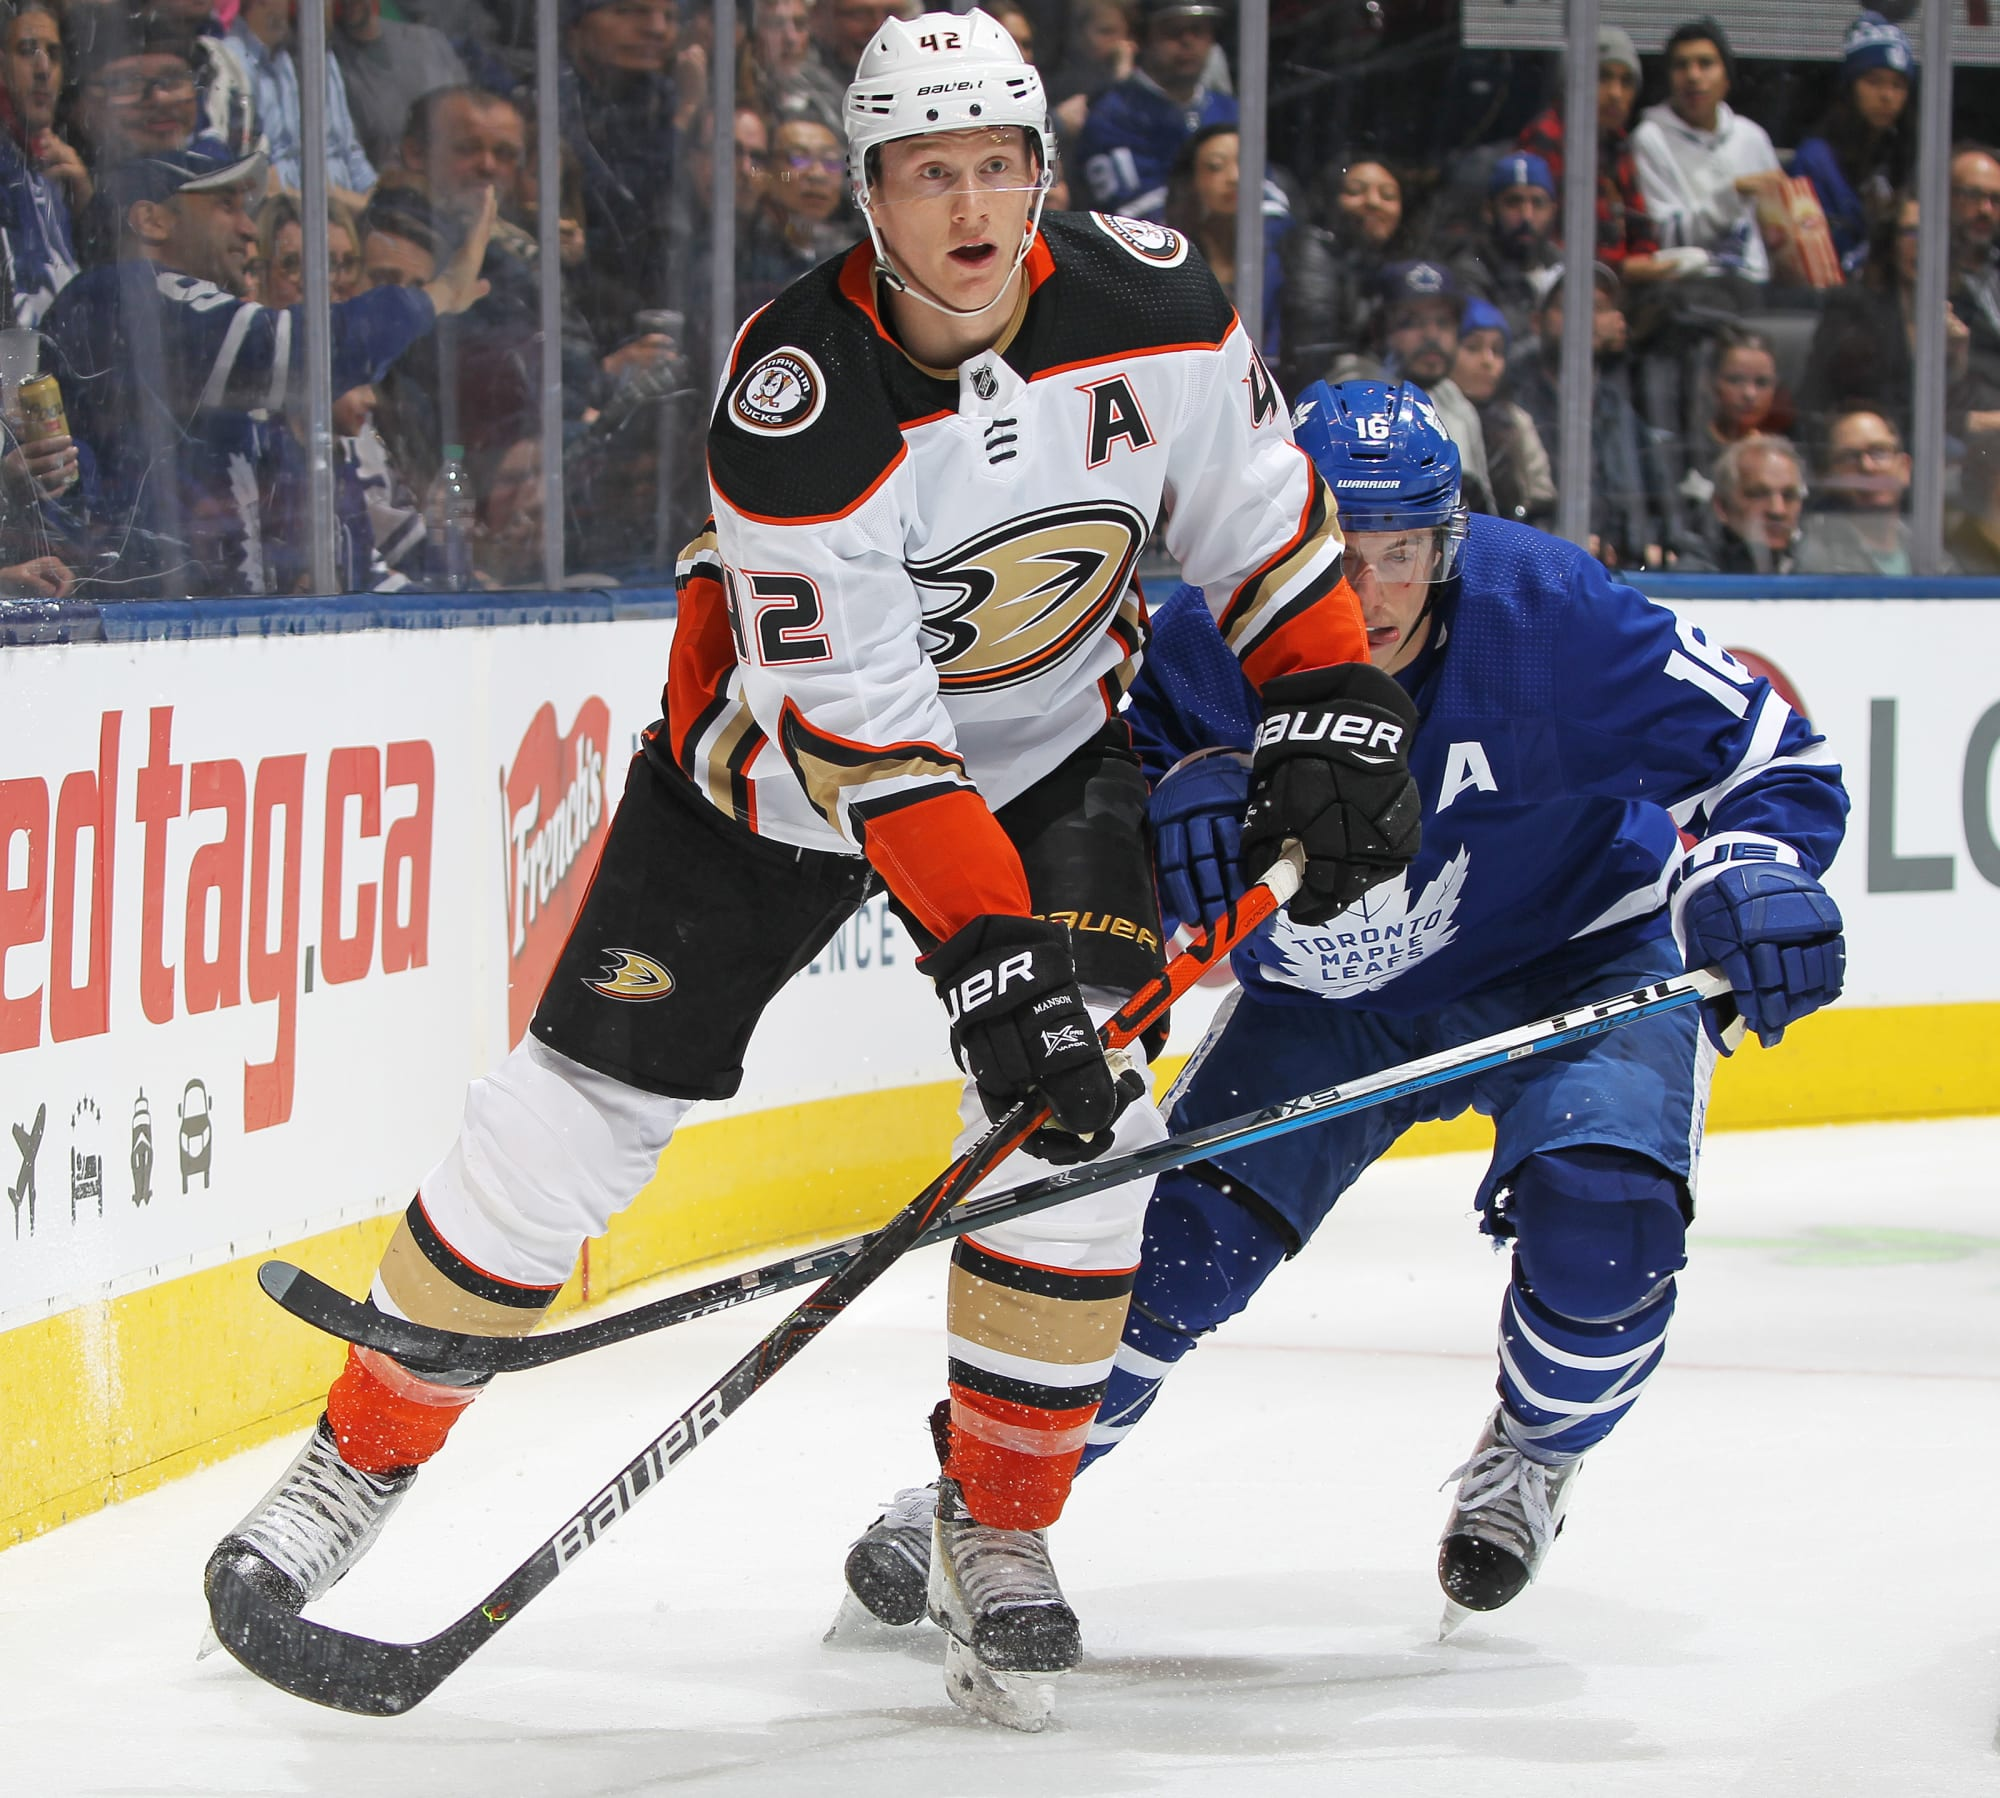 Anaheim Ducks: Maple Leafs Draft Day Loss Creates Trade Opportunity